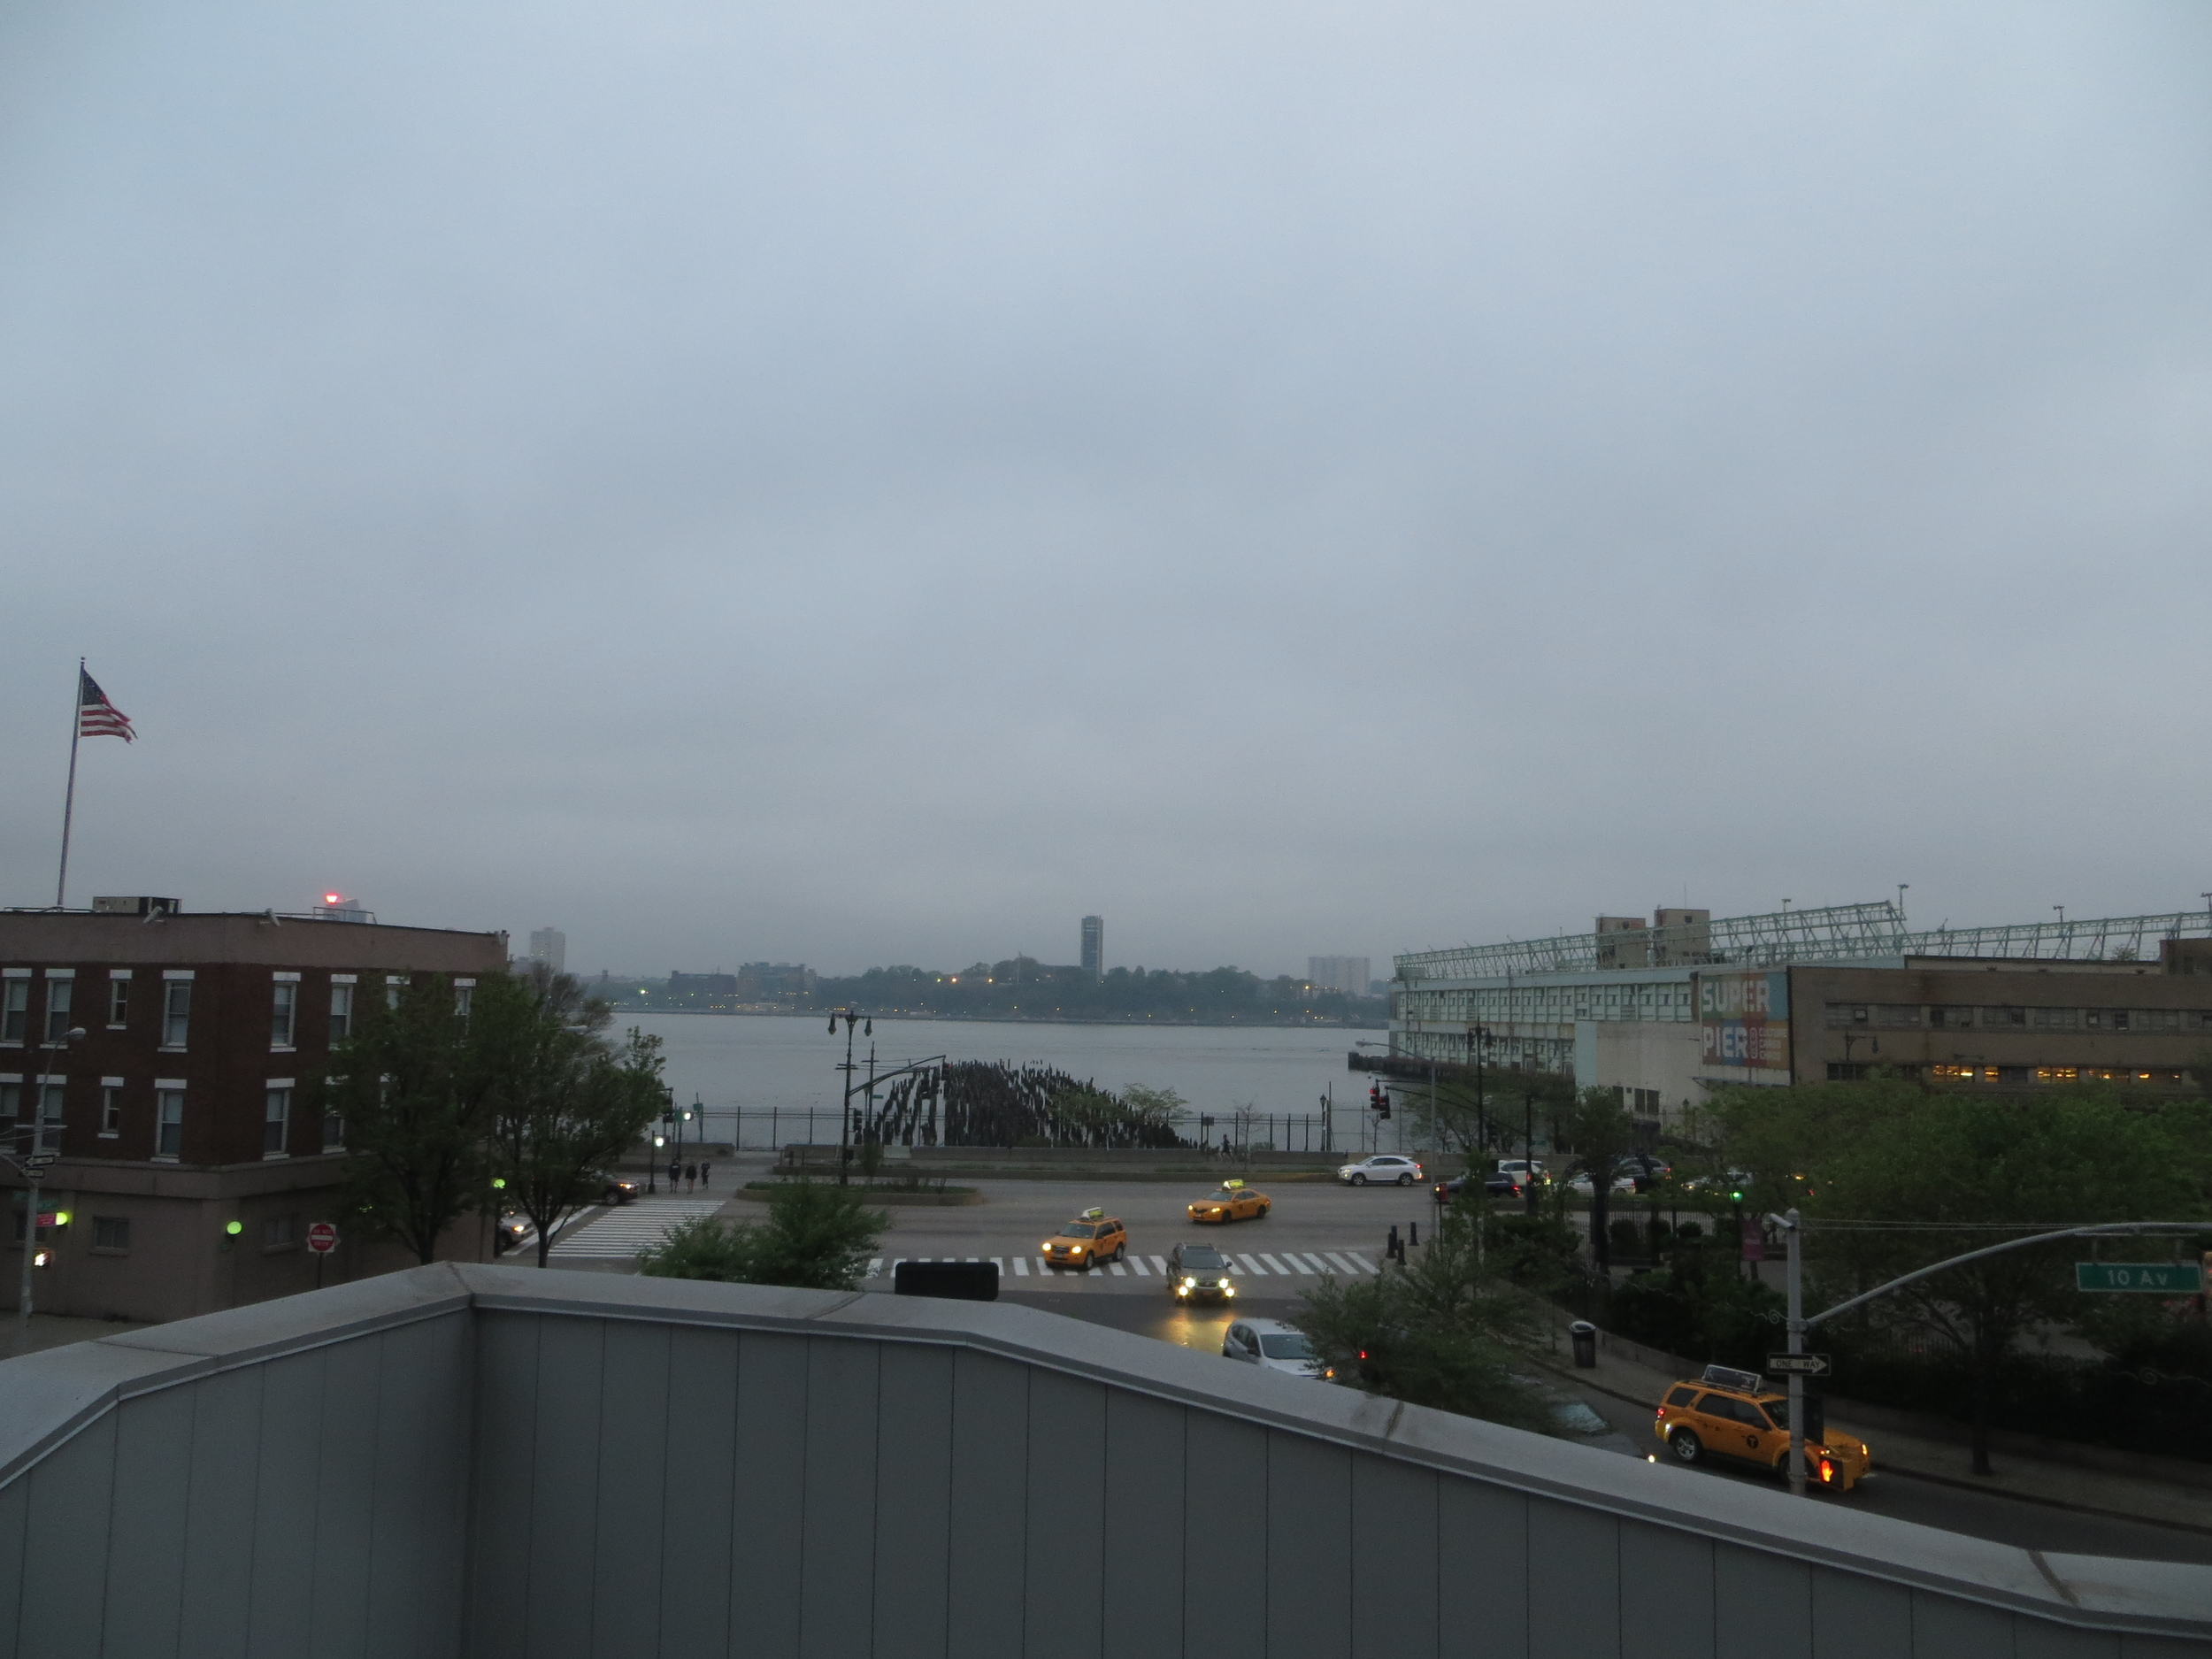 View of the Hudson